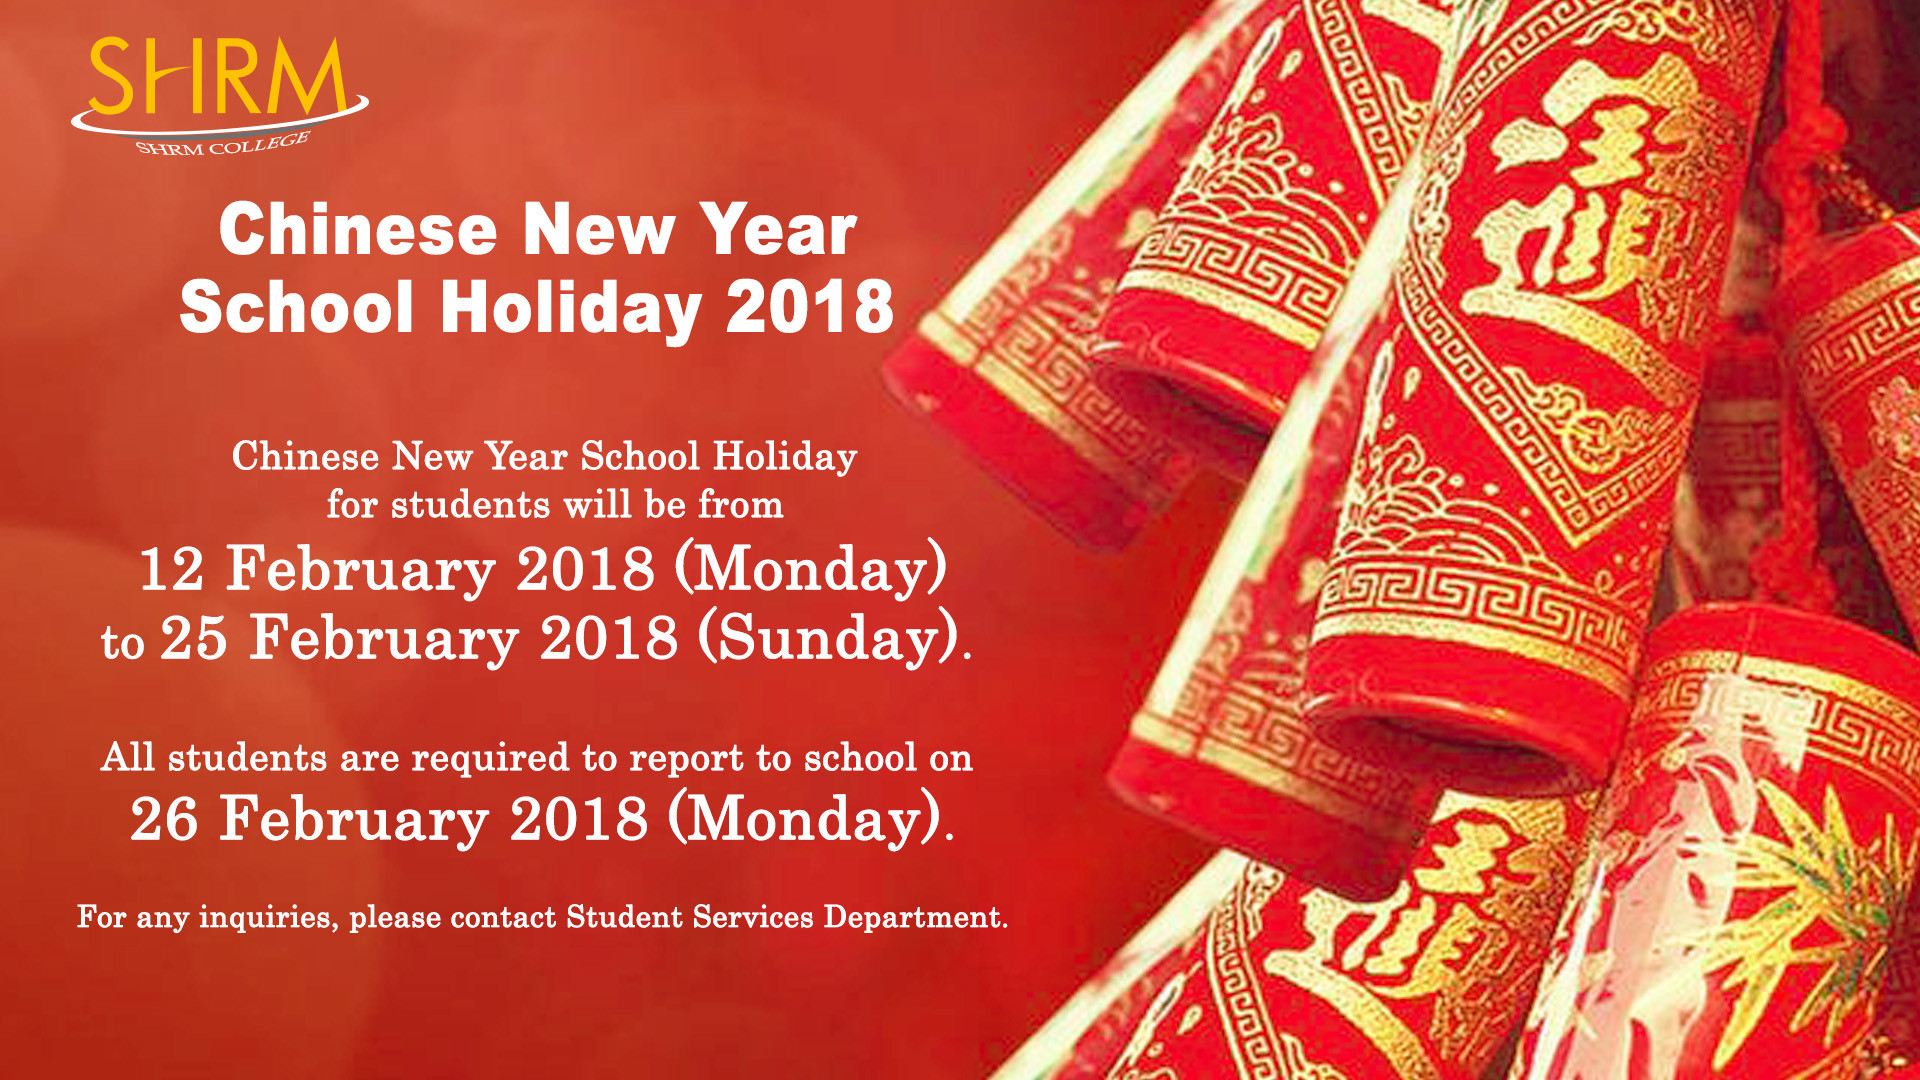 Chinese New Year Wallpaper 2018 (63+ images)